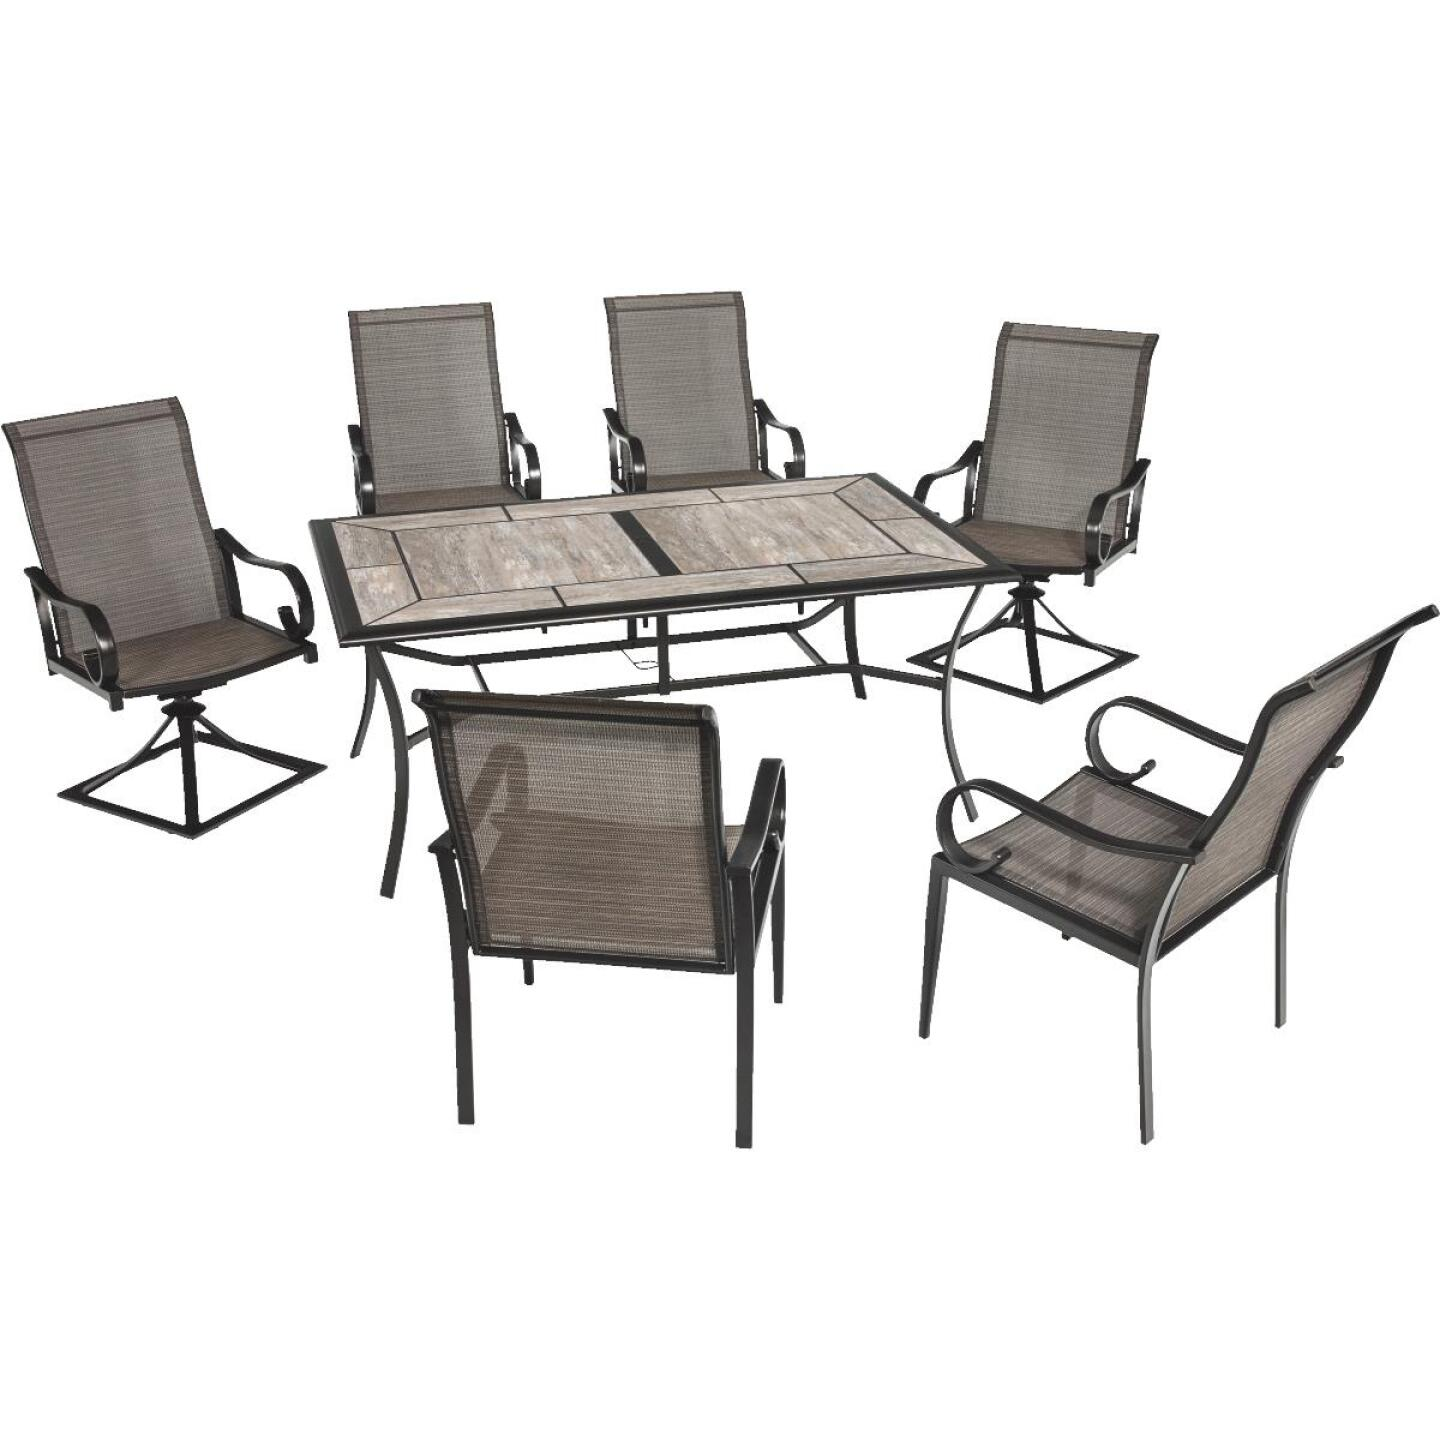 Outdoor Expressions Berkshire 7-Piece Dining Set Image 6